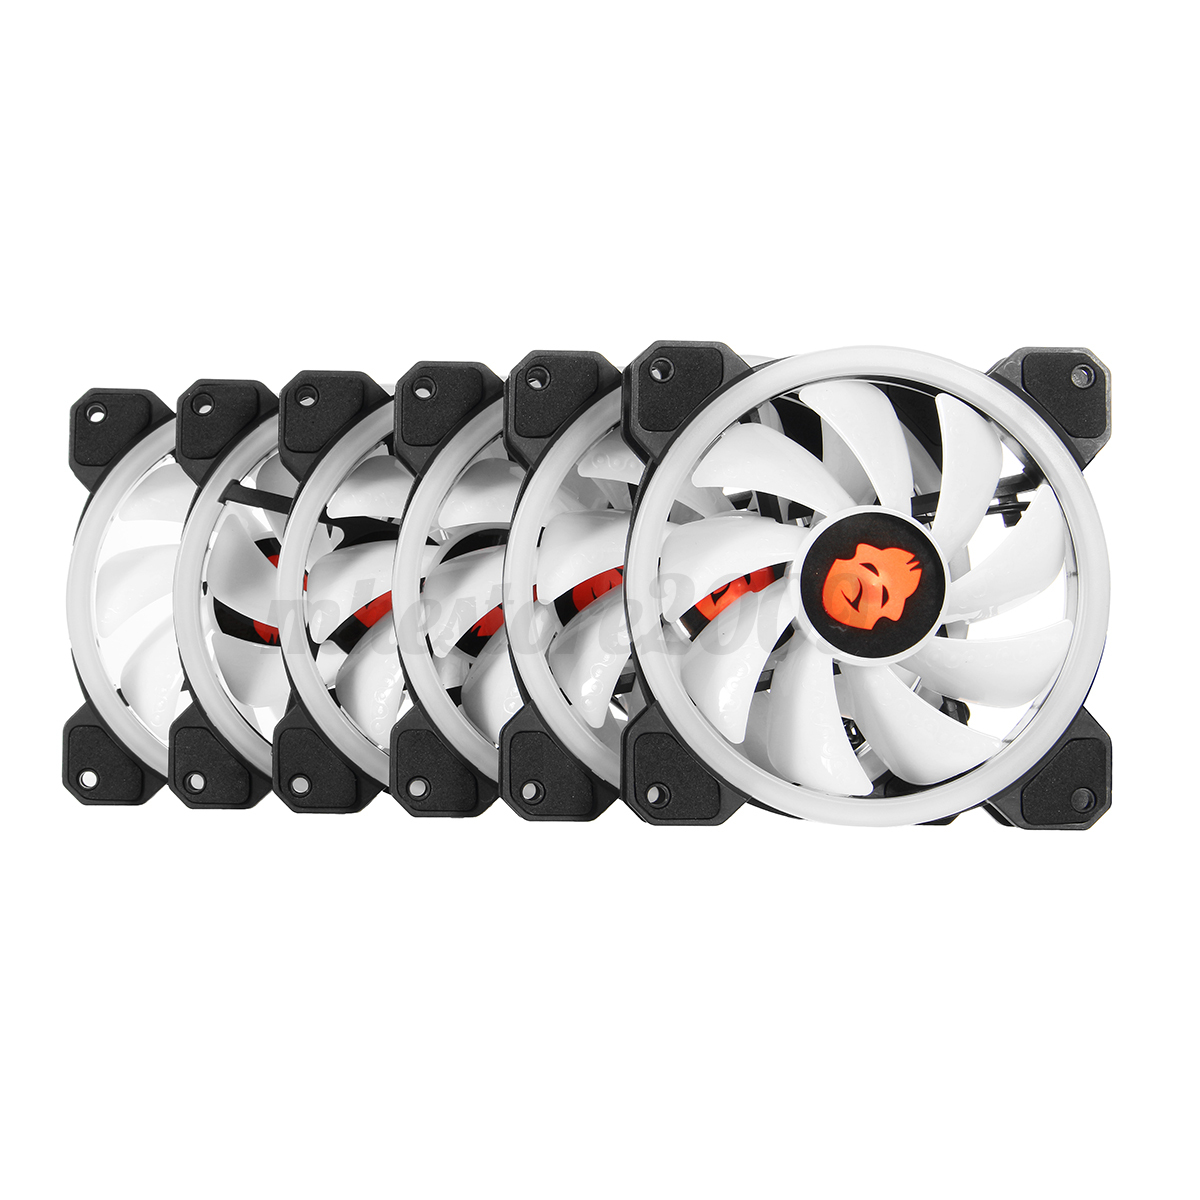 3 6 Pack Rgb Led Quiet Computer Case Pc Cooling Fan 120mm